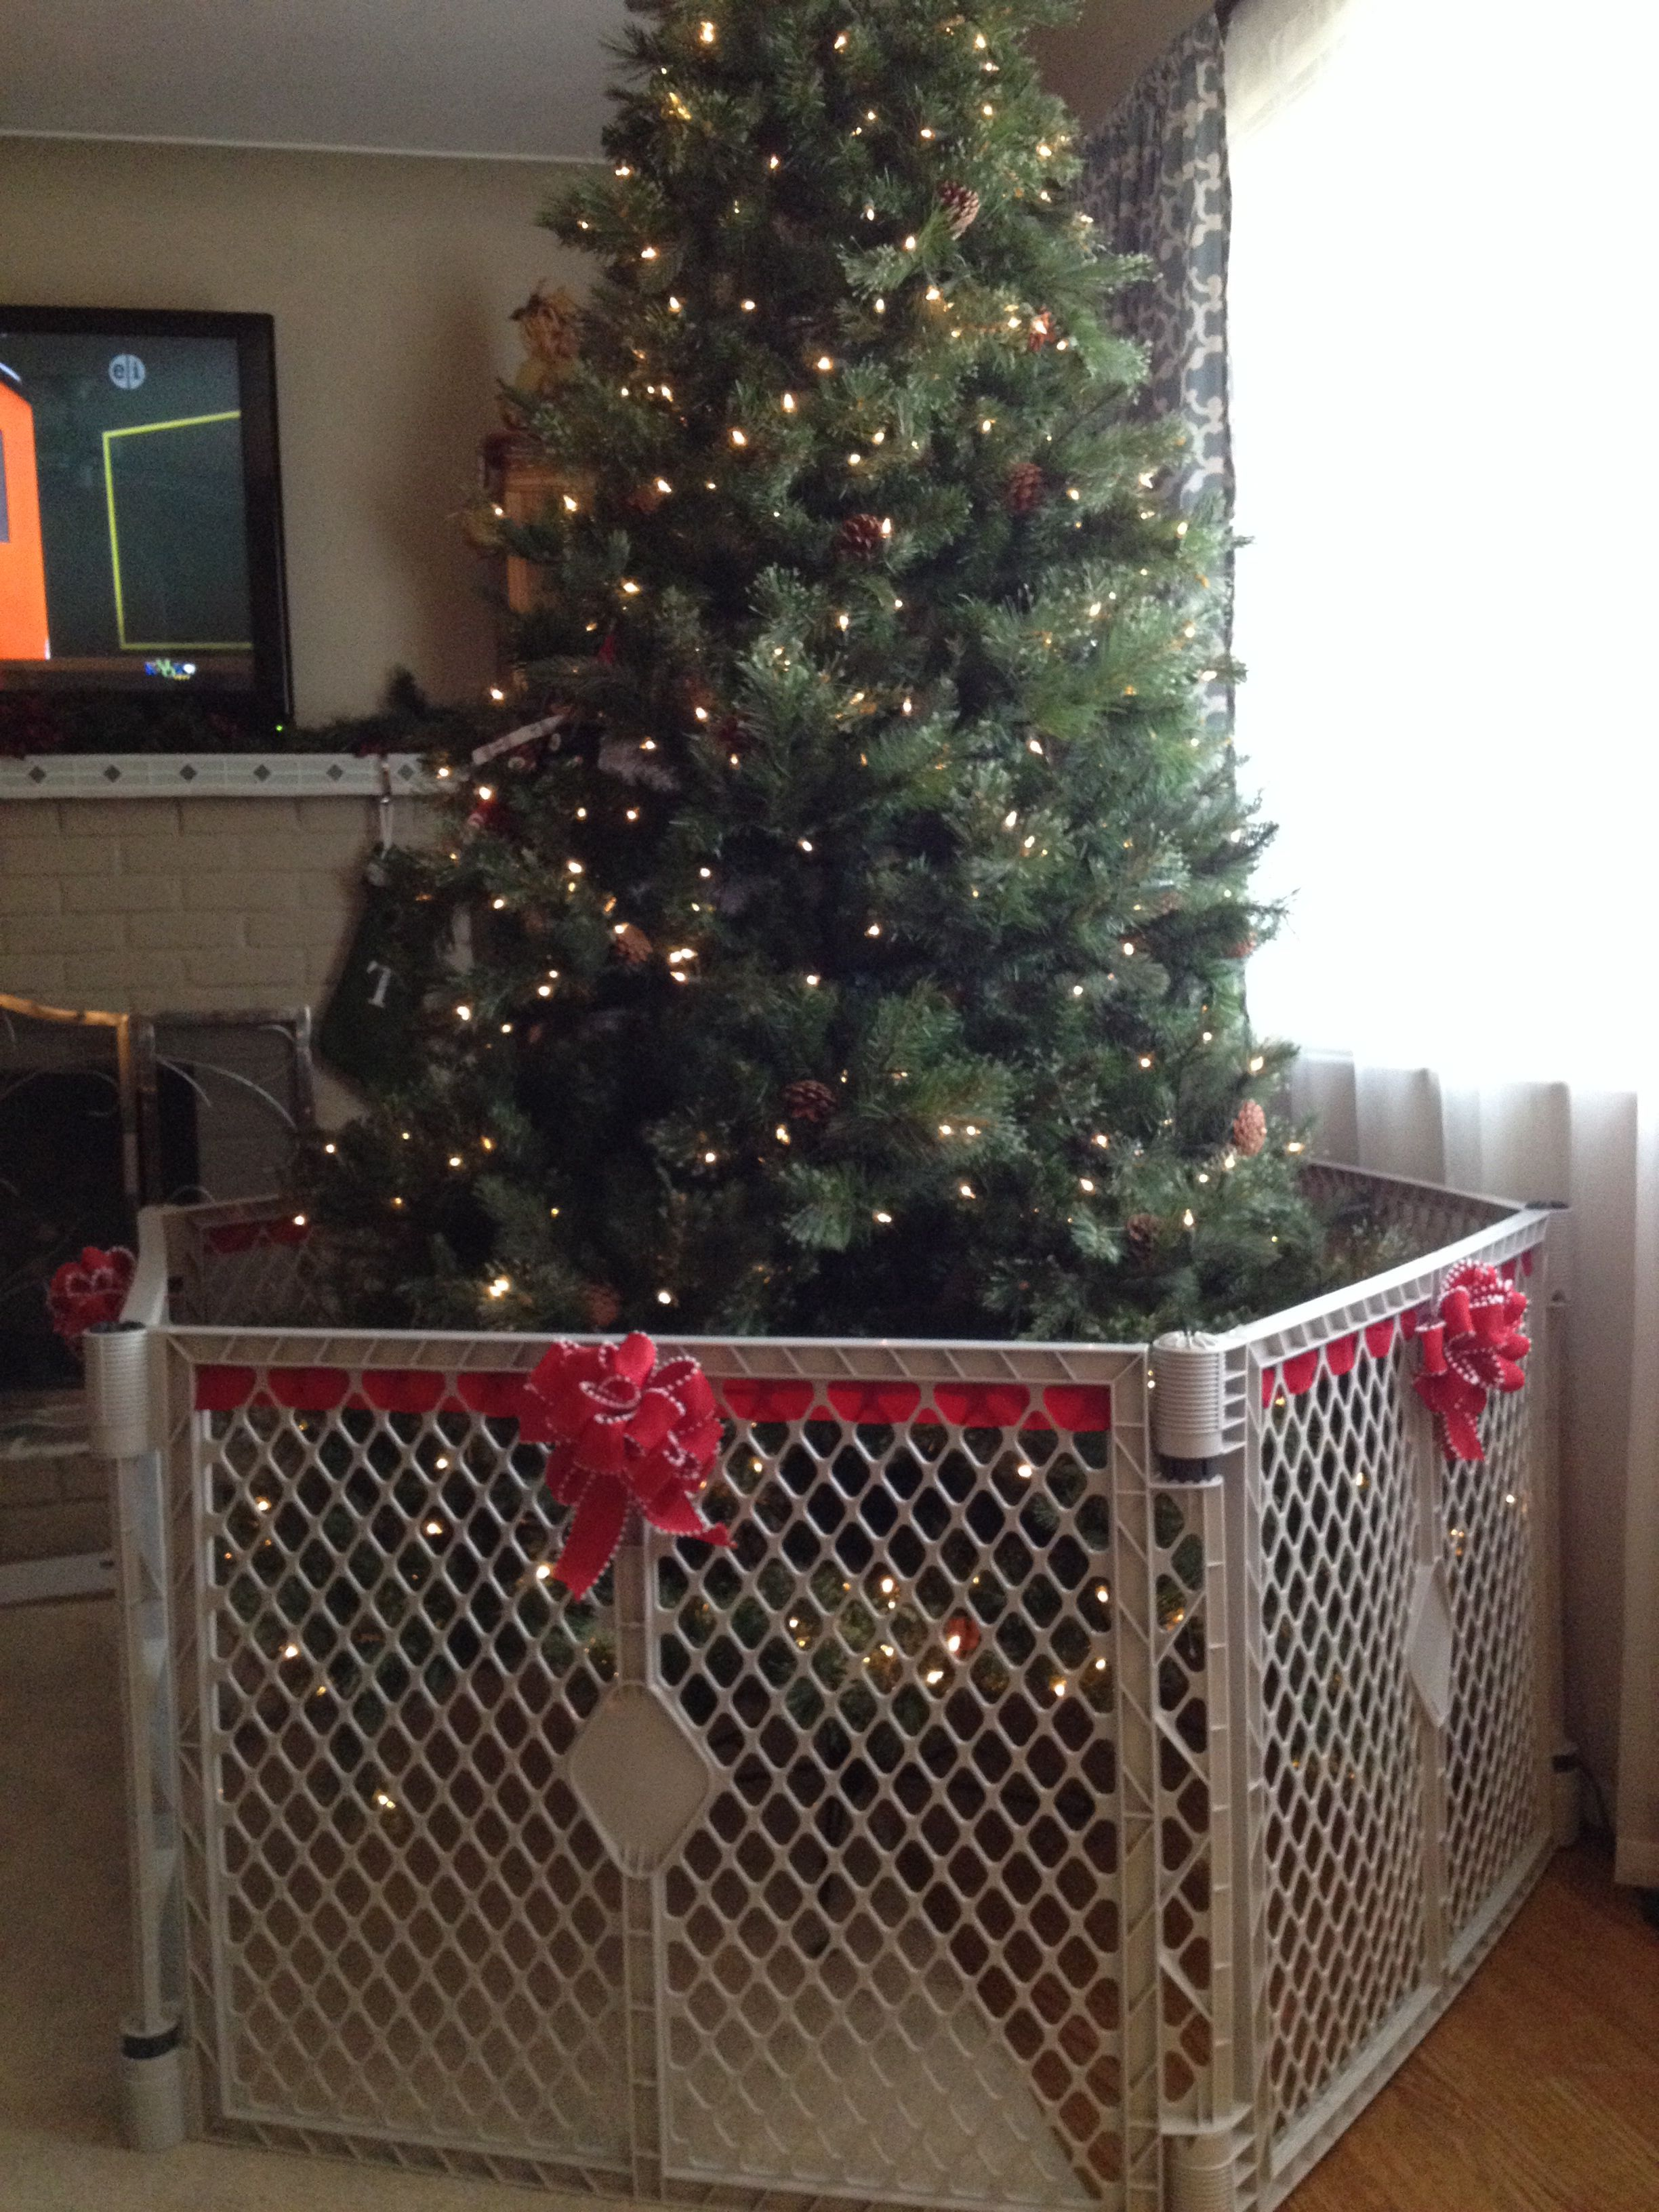 How To Make The Baby Gate Around The Christmas Tree Less Ugly